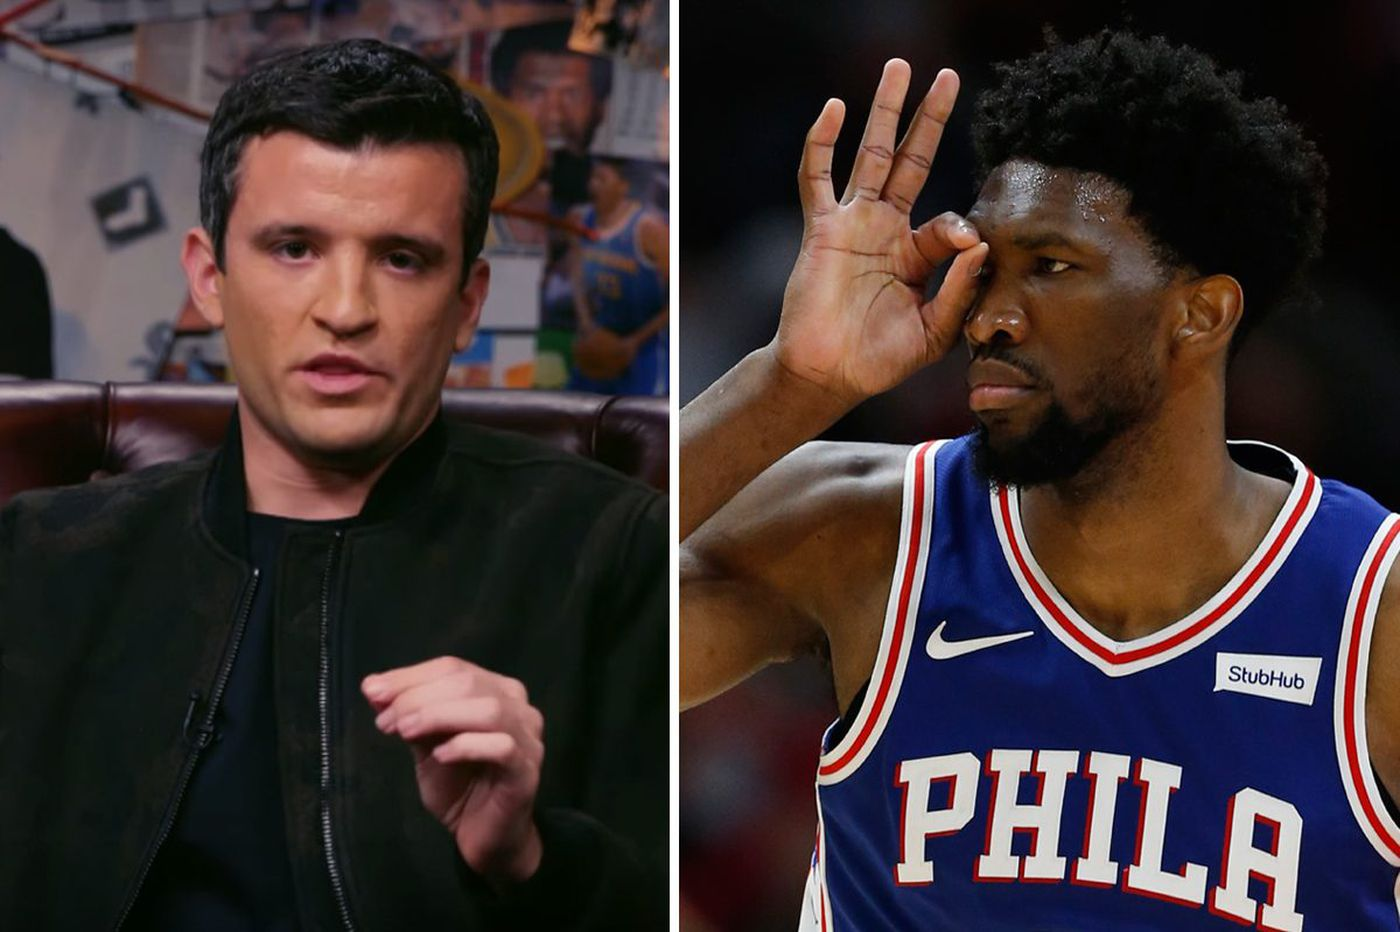 ESPN, Cycle host Rob Perez sends apology letters after Sixers' win